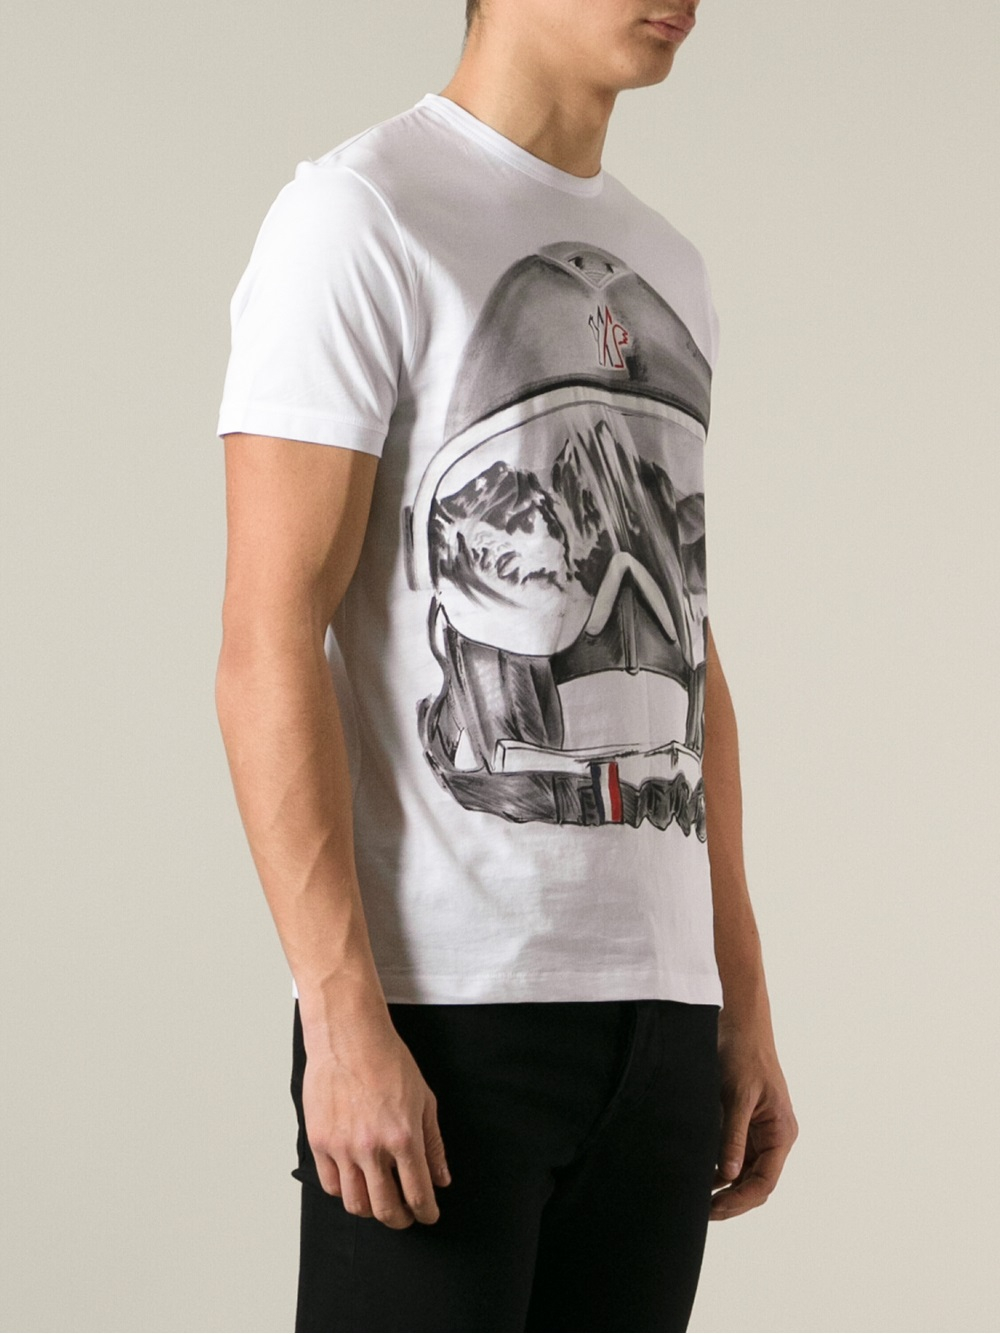 lyst moncler ski helmet print tshirt in white for men. Black Bedroom Furniture Sets. Home Design Ideas